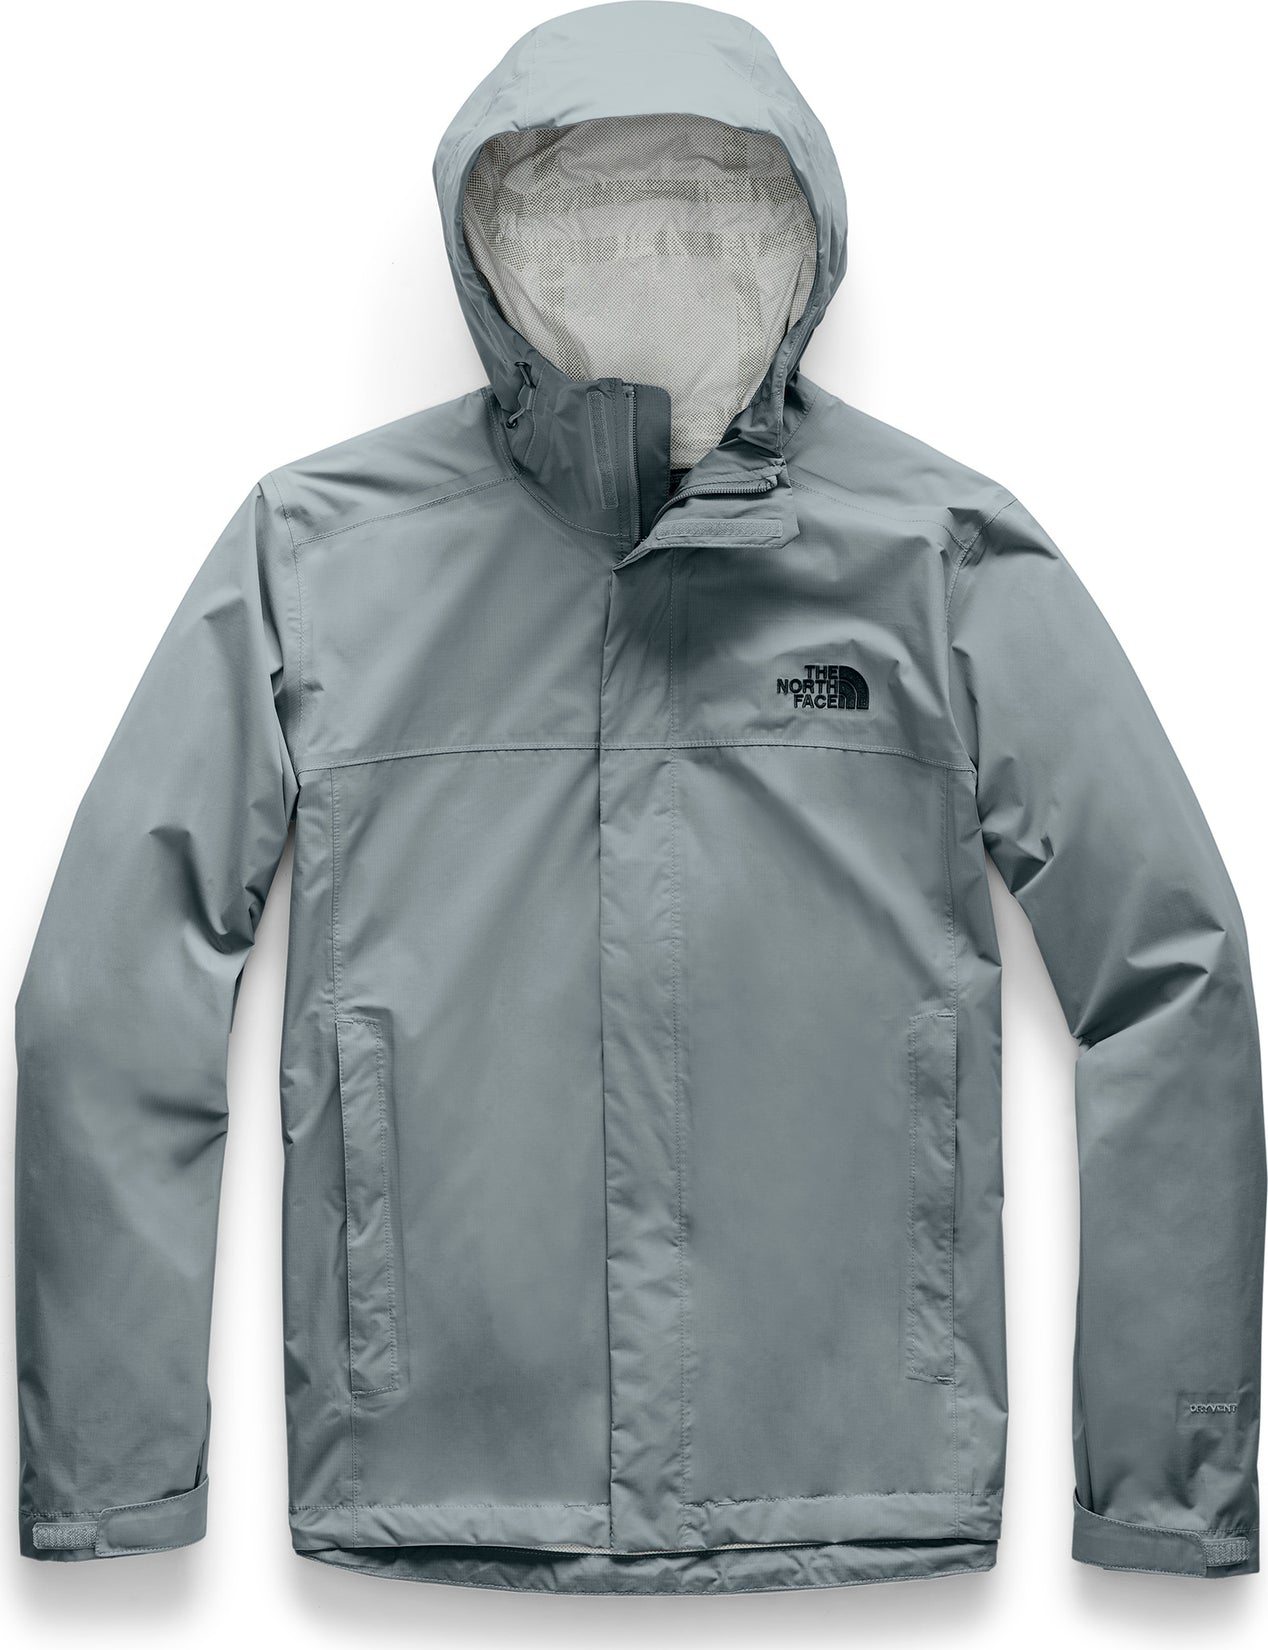 7a3e24960 The North Face Venture 2 Jacket - Men's